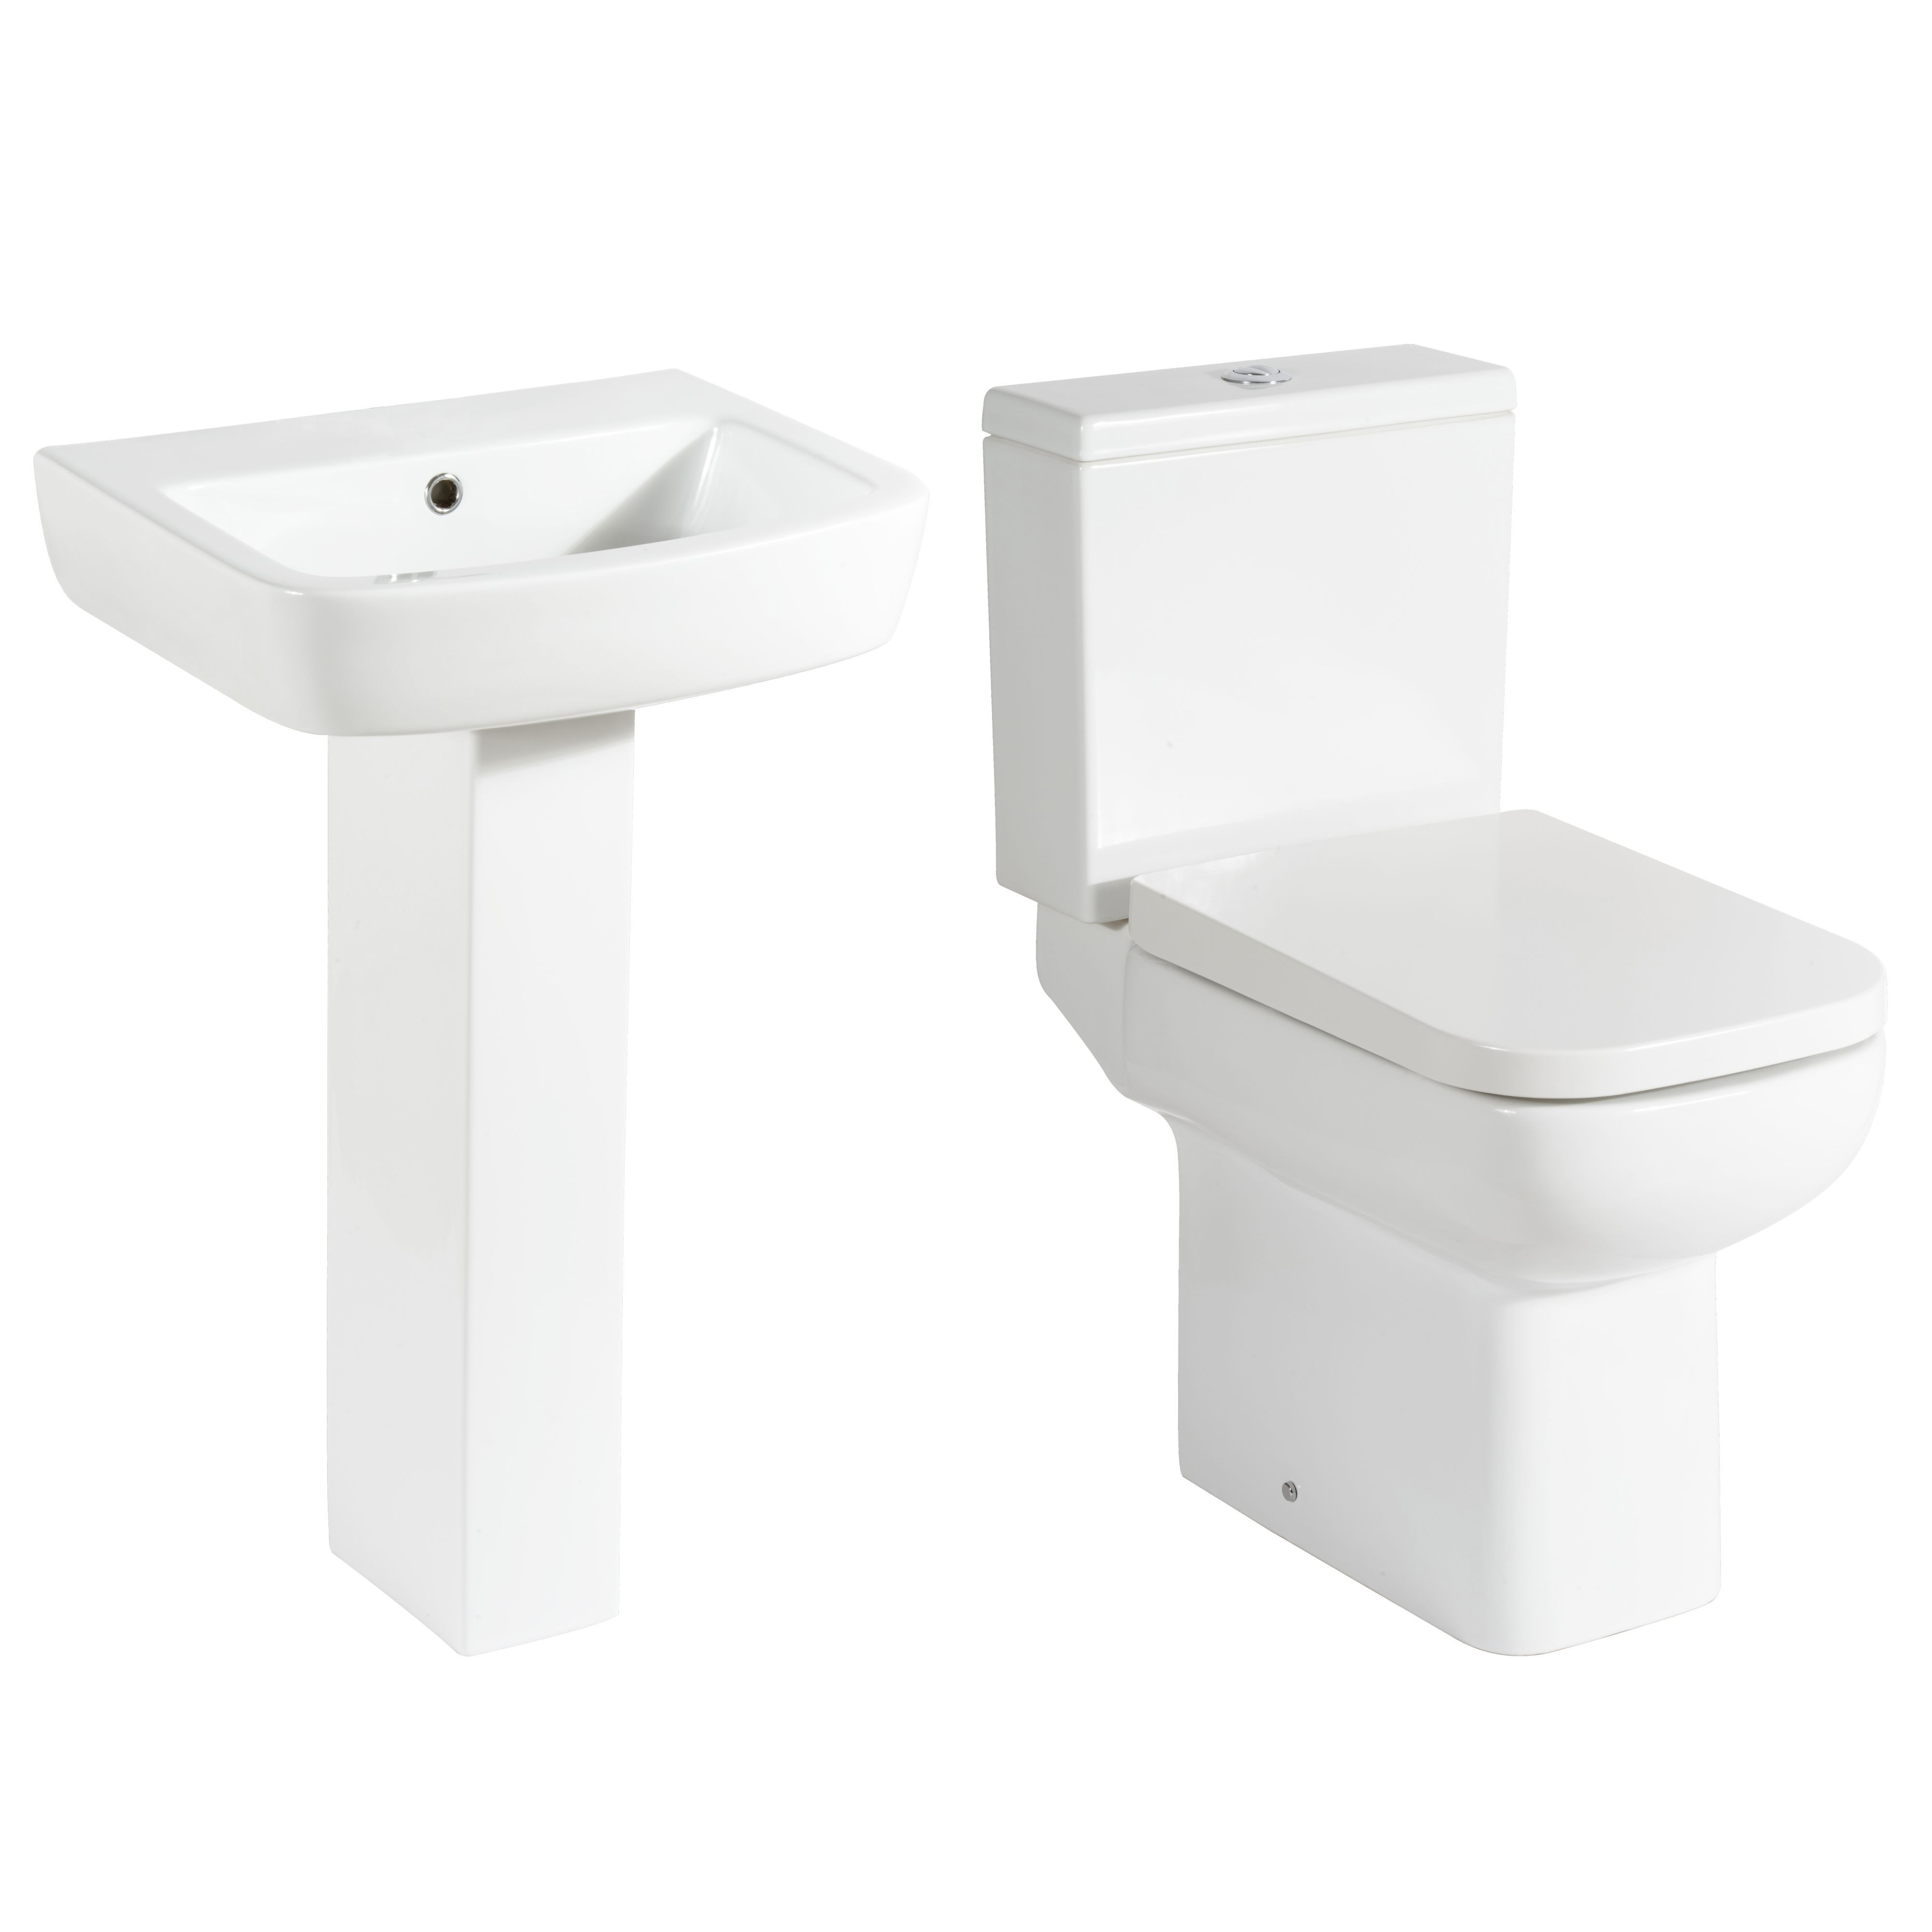 B and q cooke and lewis bathrooms - Cooke Lewis Fabienne Close Coupled Toilet Full Pedestal Basin Departments Diy At B Q